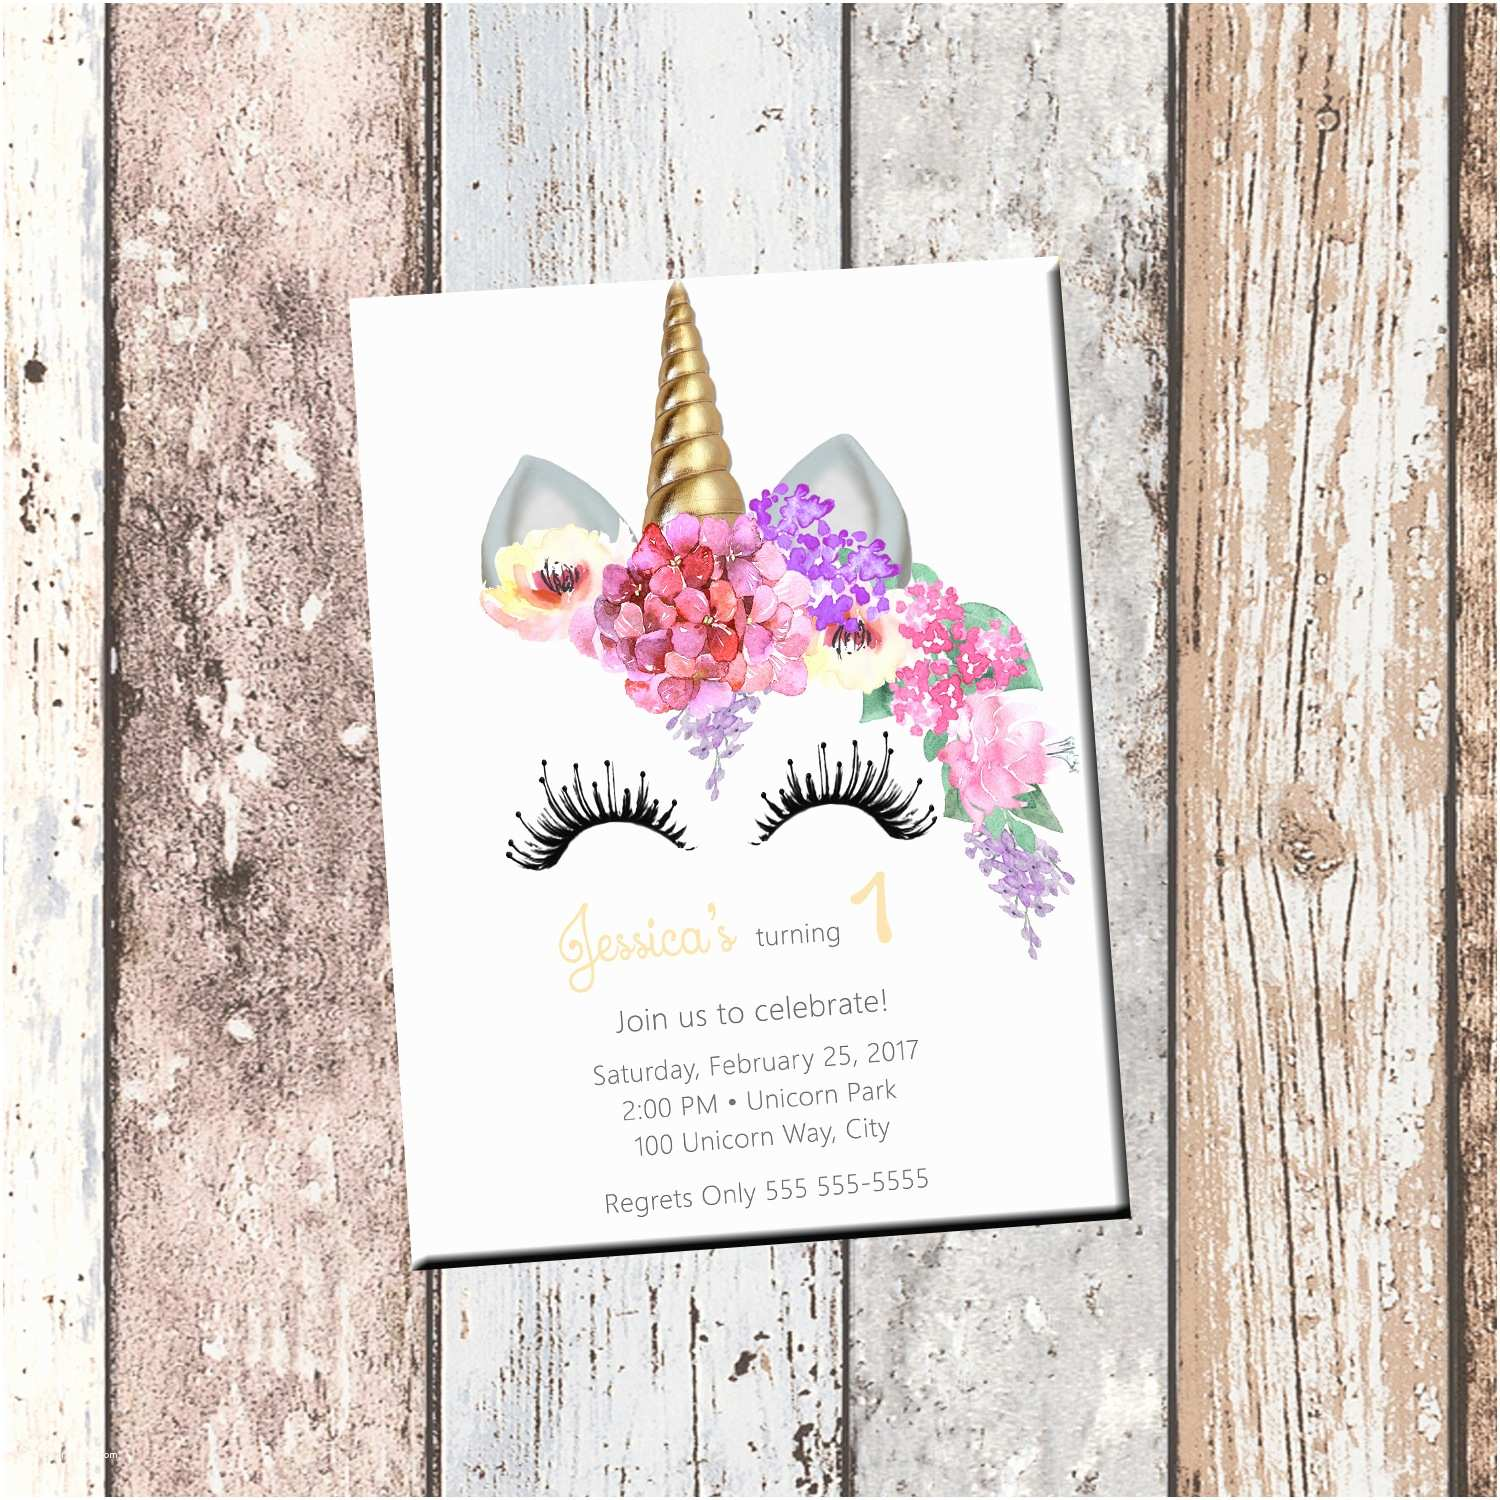 Customized Birthday Invitations Unicorn Birthday Personalized Invitation 1 Sided Birthday